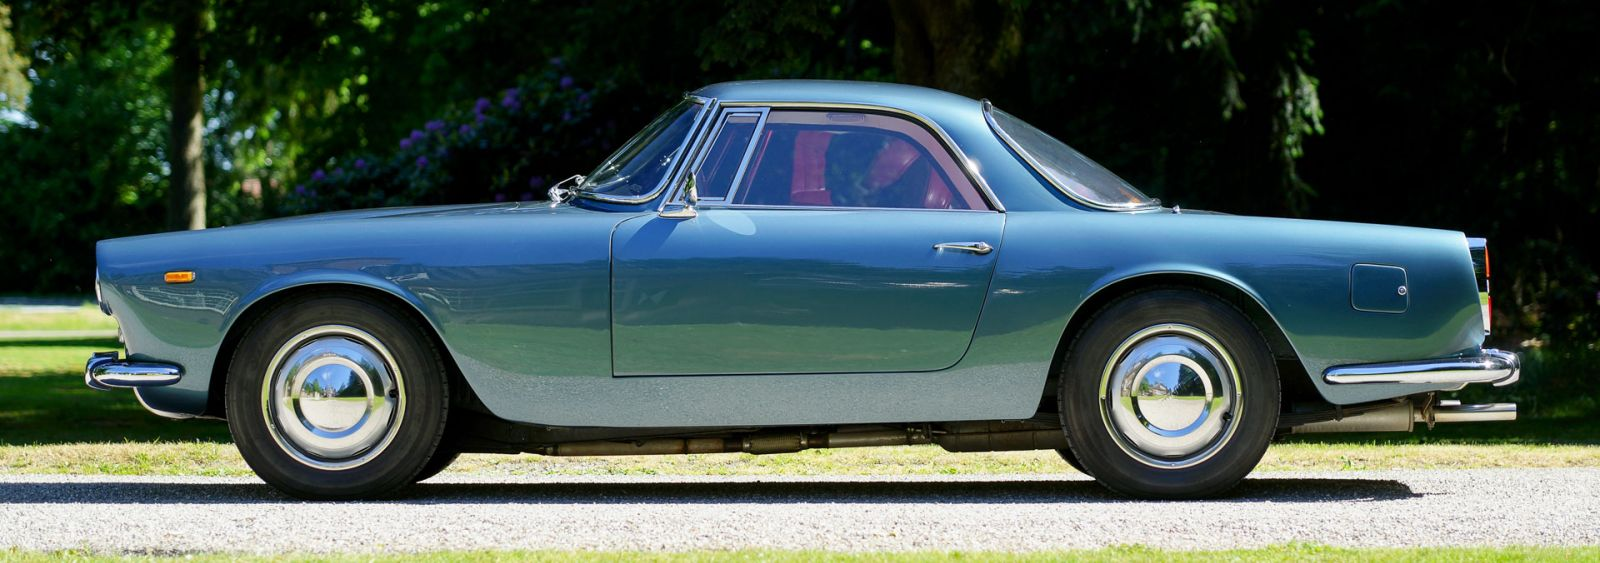 Lancia Flaminia 2.8 L 3C coupe, 1966 - Welcome to ClassiCarGarage